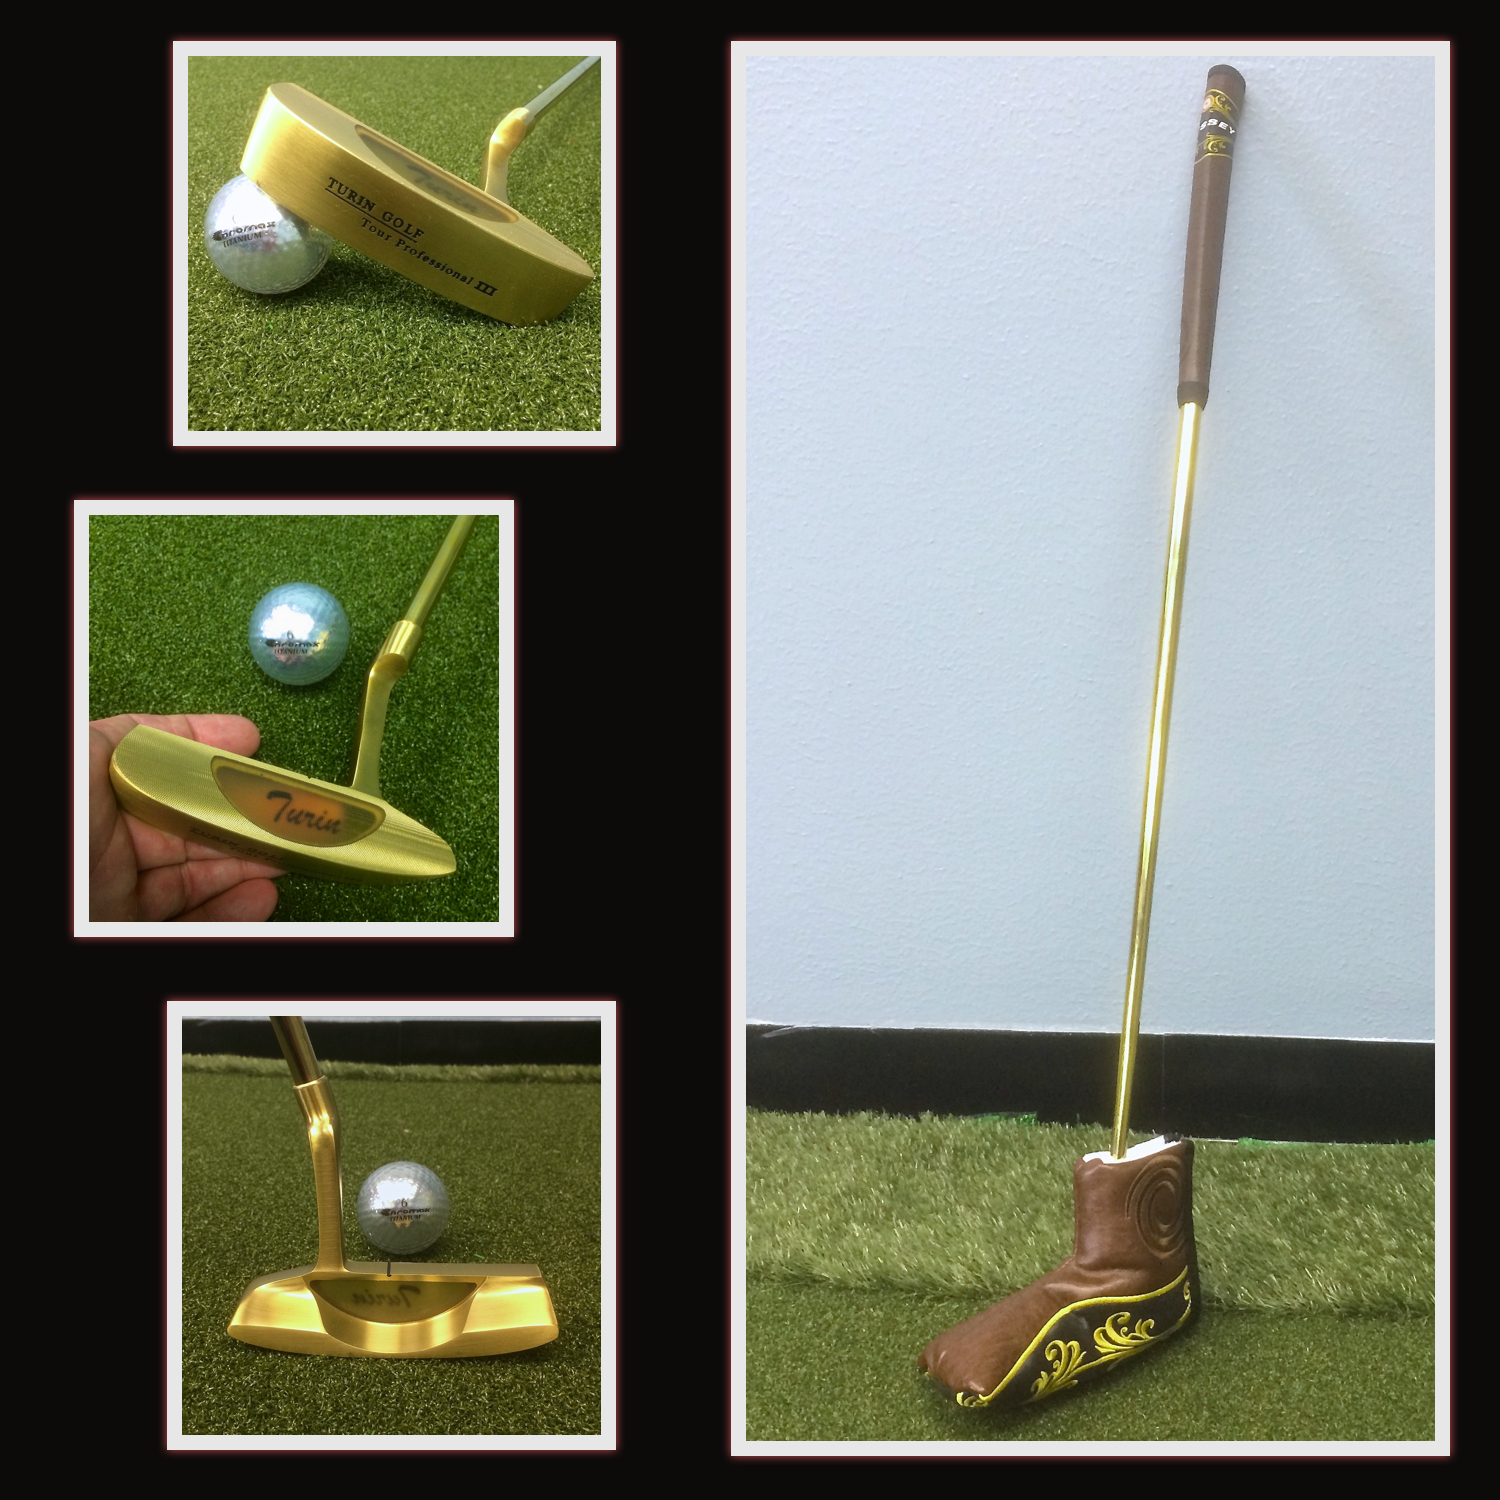 Golden Cigar Victory Putter